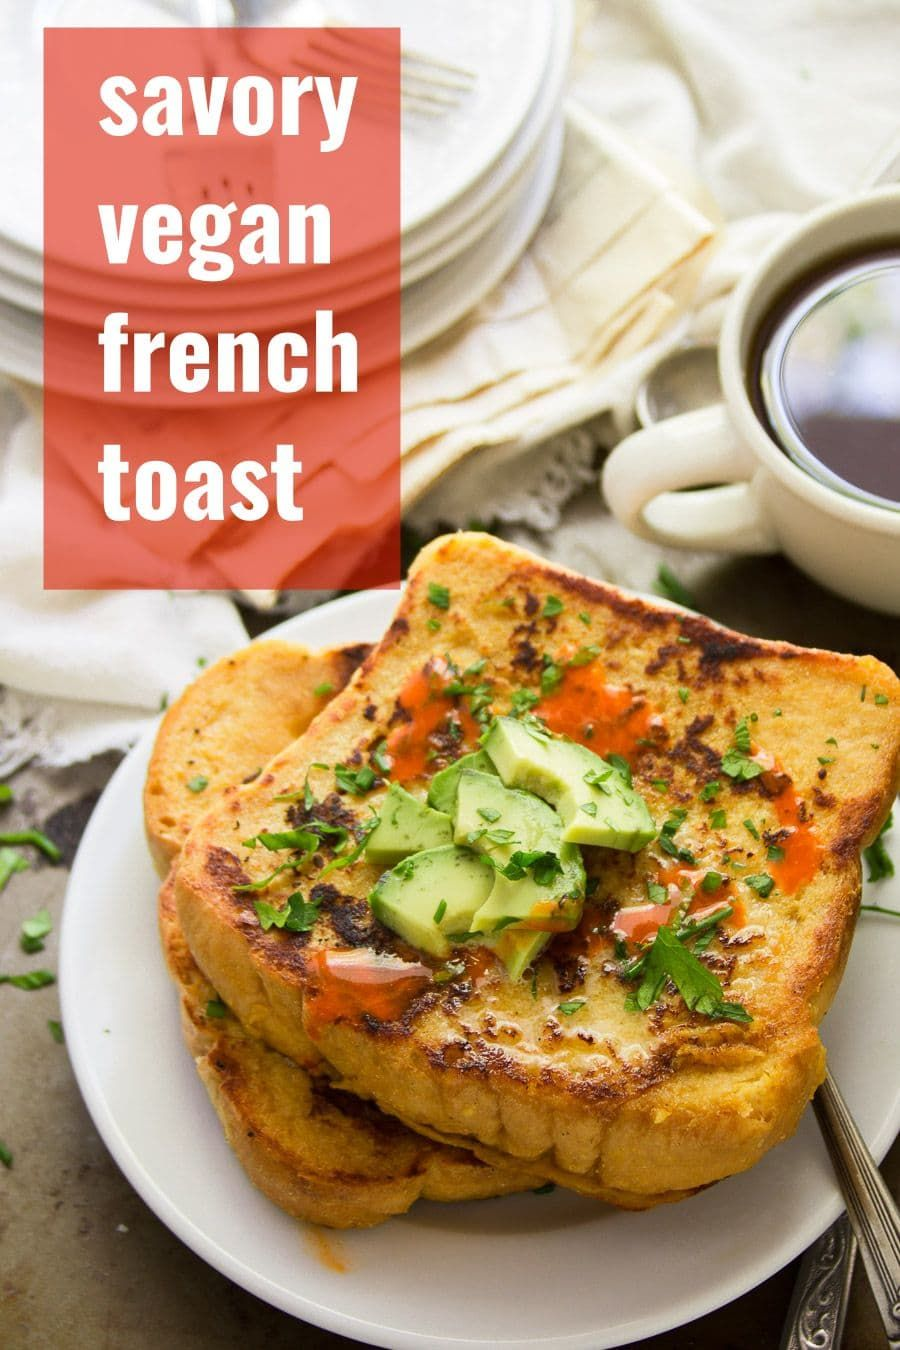 Fluffy Golden Crisp And Packed With Savory Flavor This Savory Vegan French Toast Made From Chickpea Flour Pu Savoury French Toast Vegan Brunch Savory Vegan